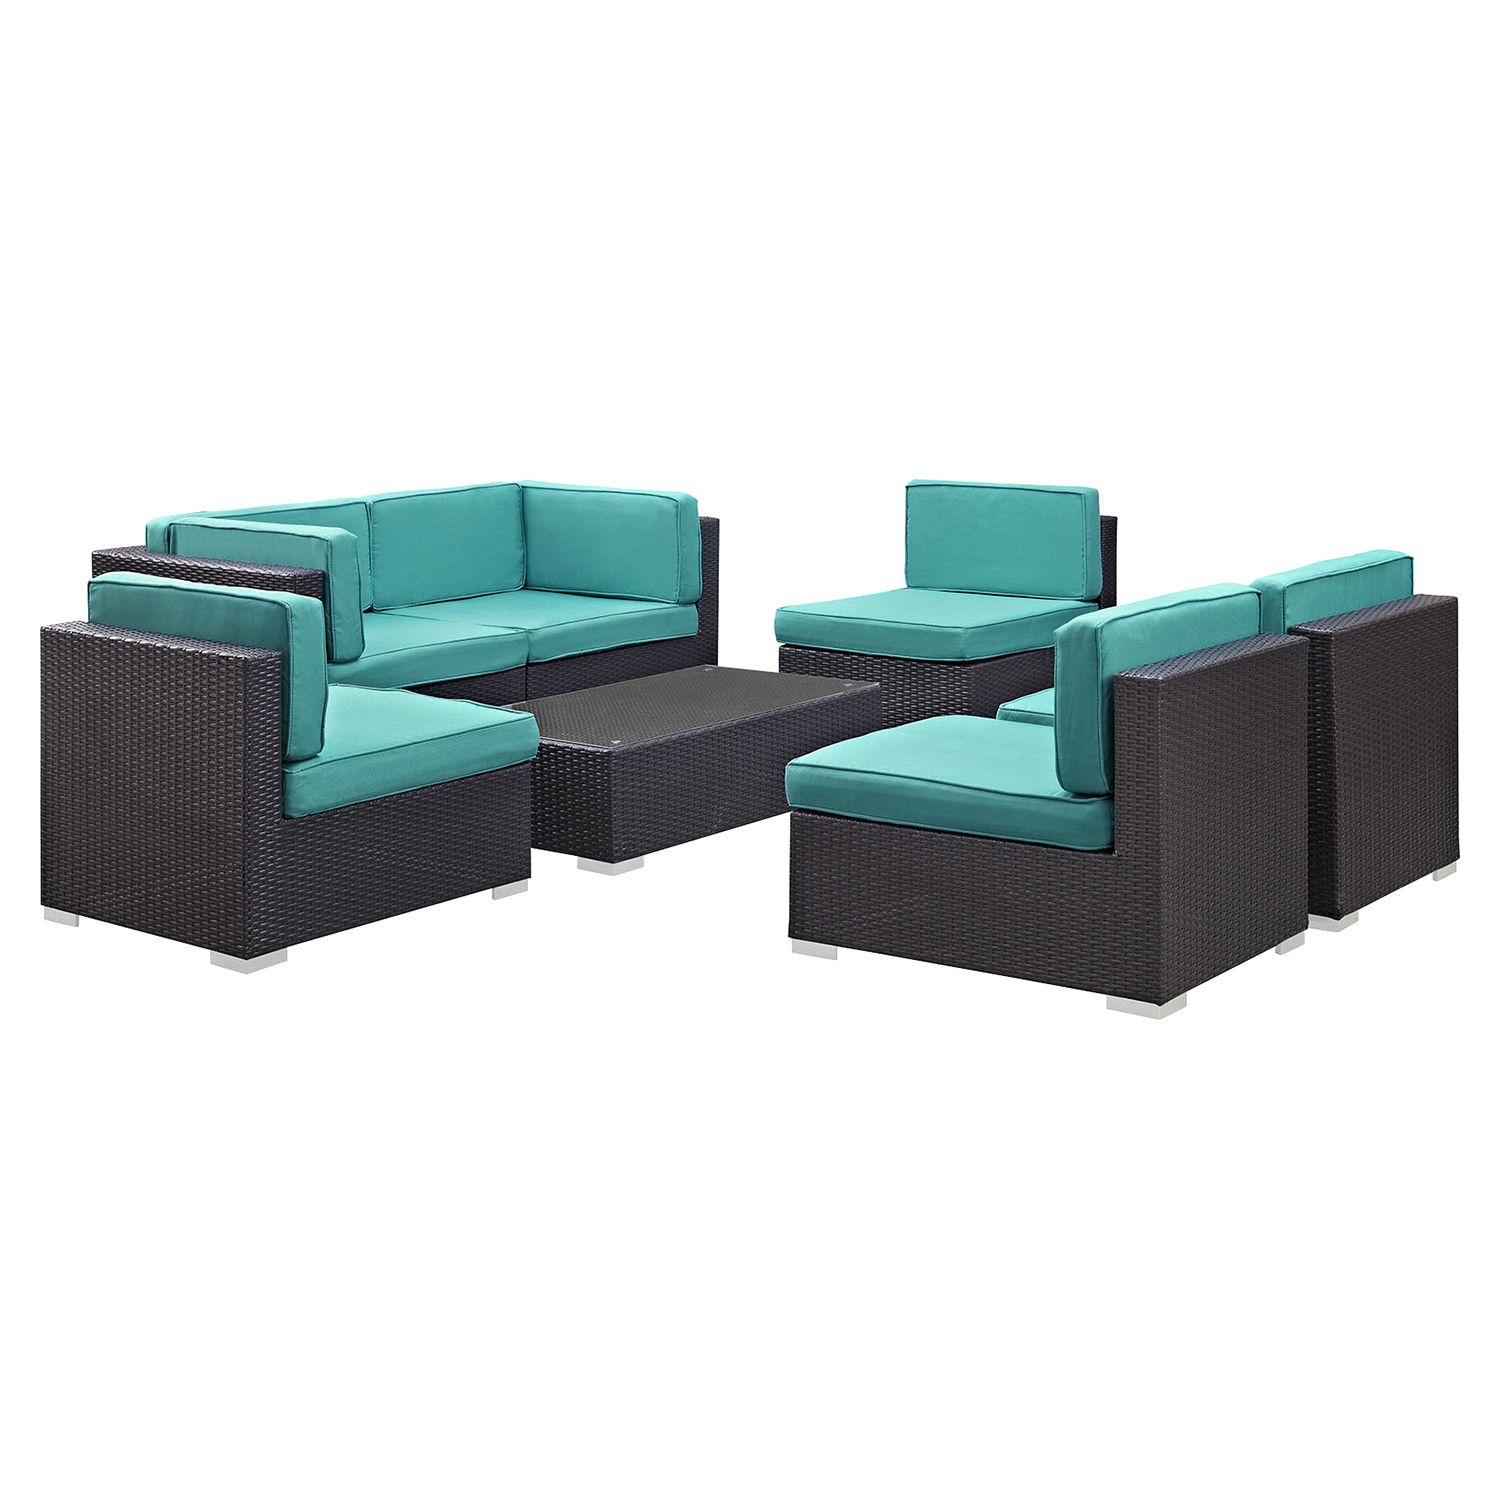 Aero 7 Pieces Outdoor Patio Sectional Set - Espresso, Turquoise - EEI-695-EXP-TRQ-SET